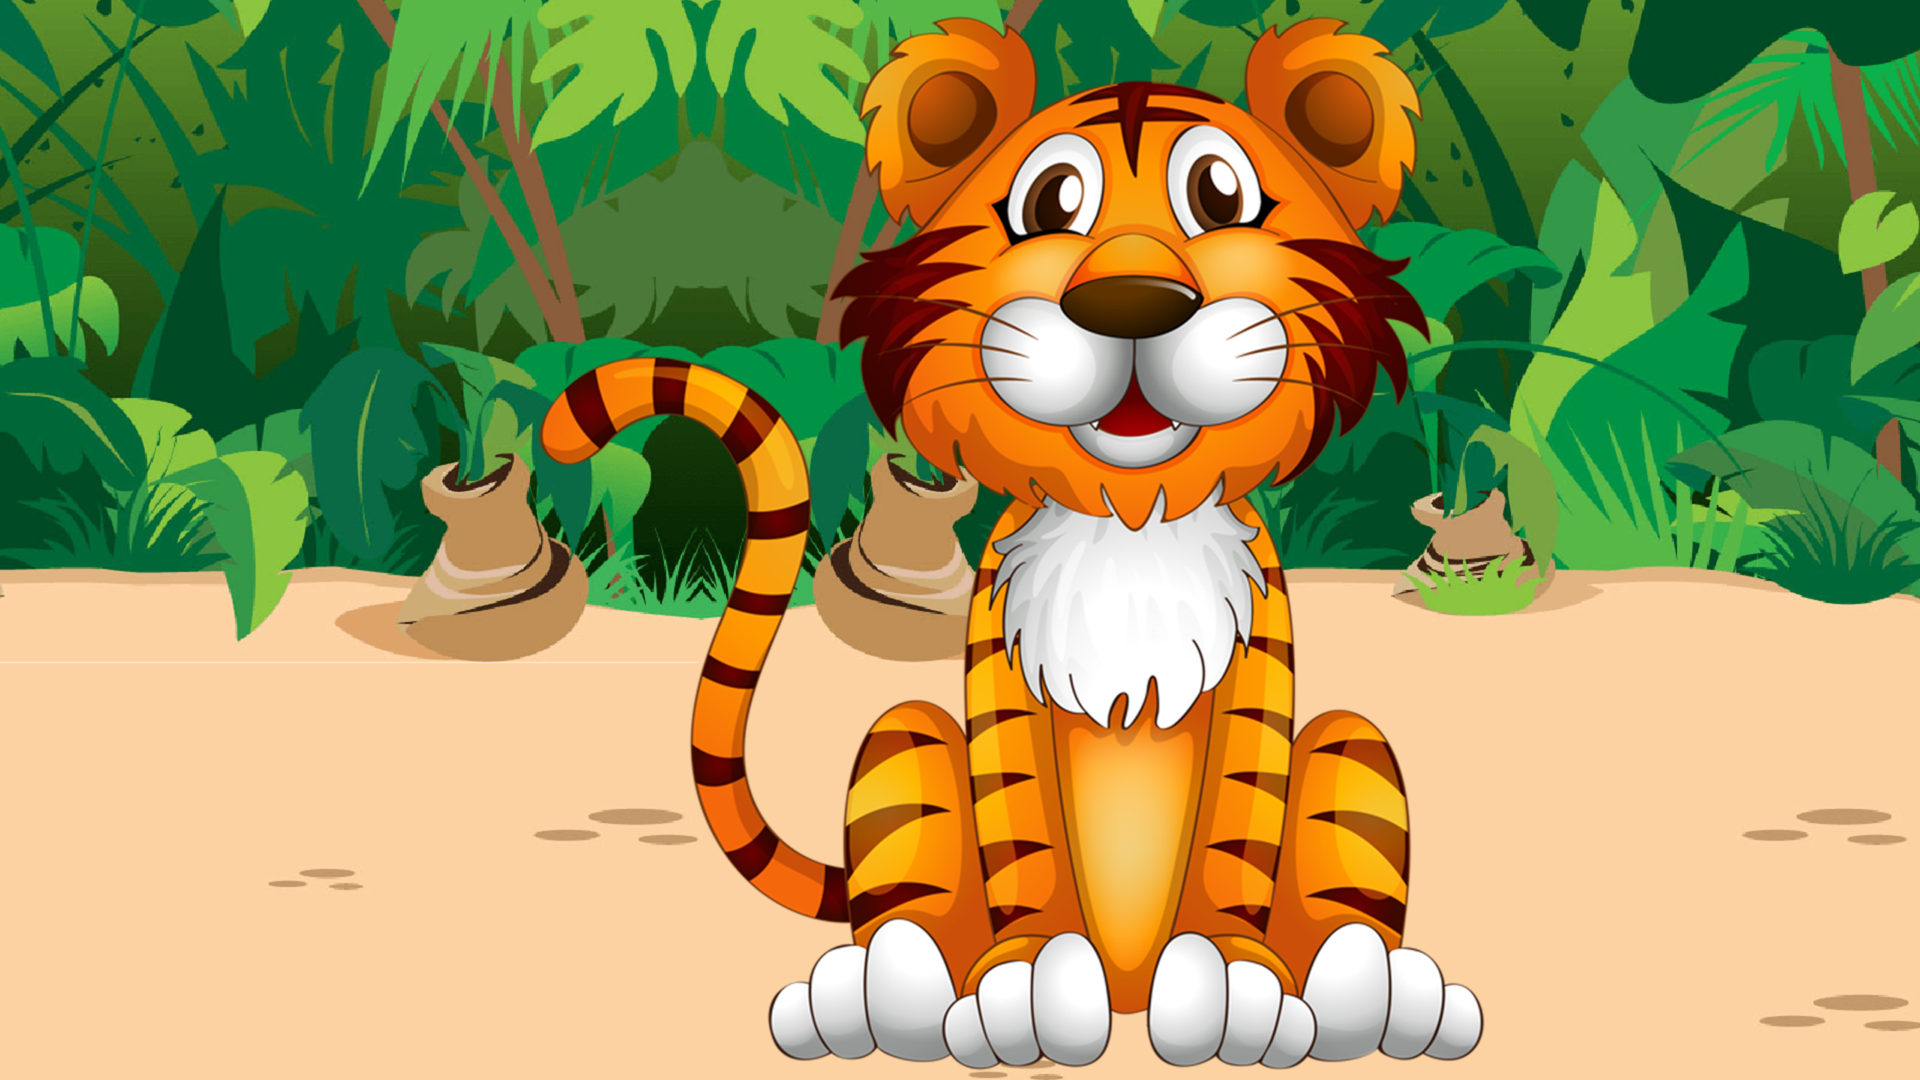 Animated Princess Wallpapers Cute Tiger Jungle Plant Cartoon Picture Pretty Desktop Hd